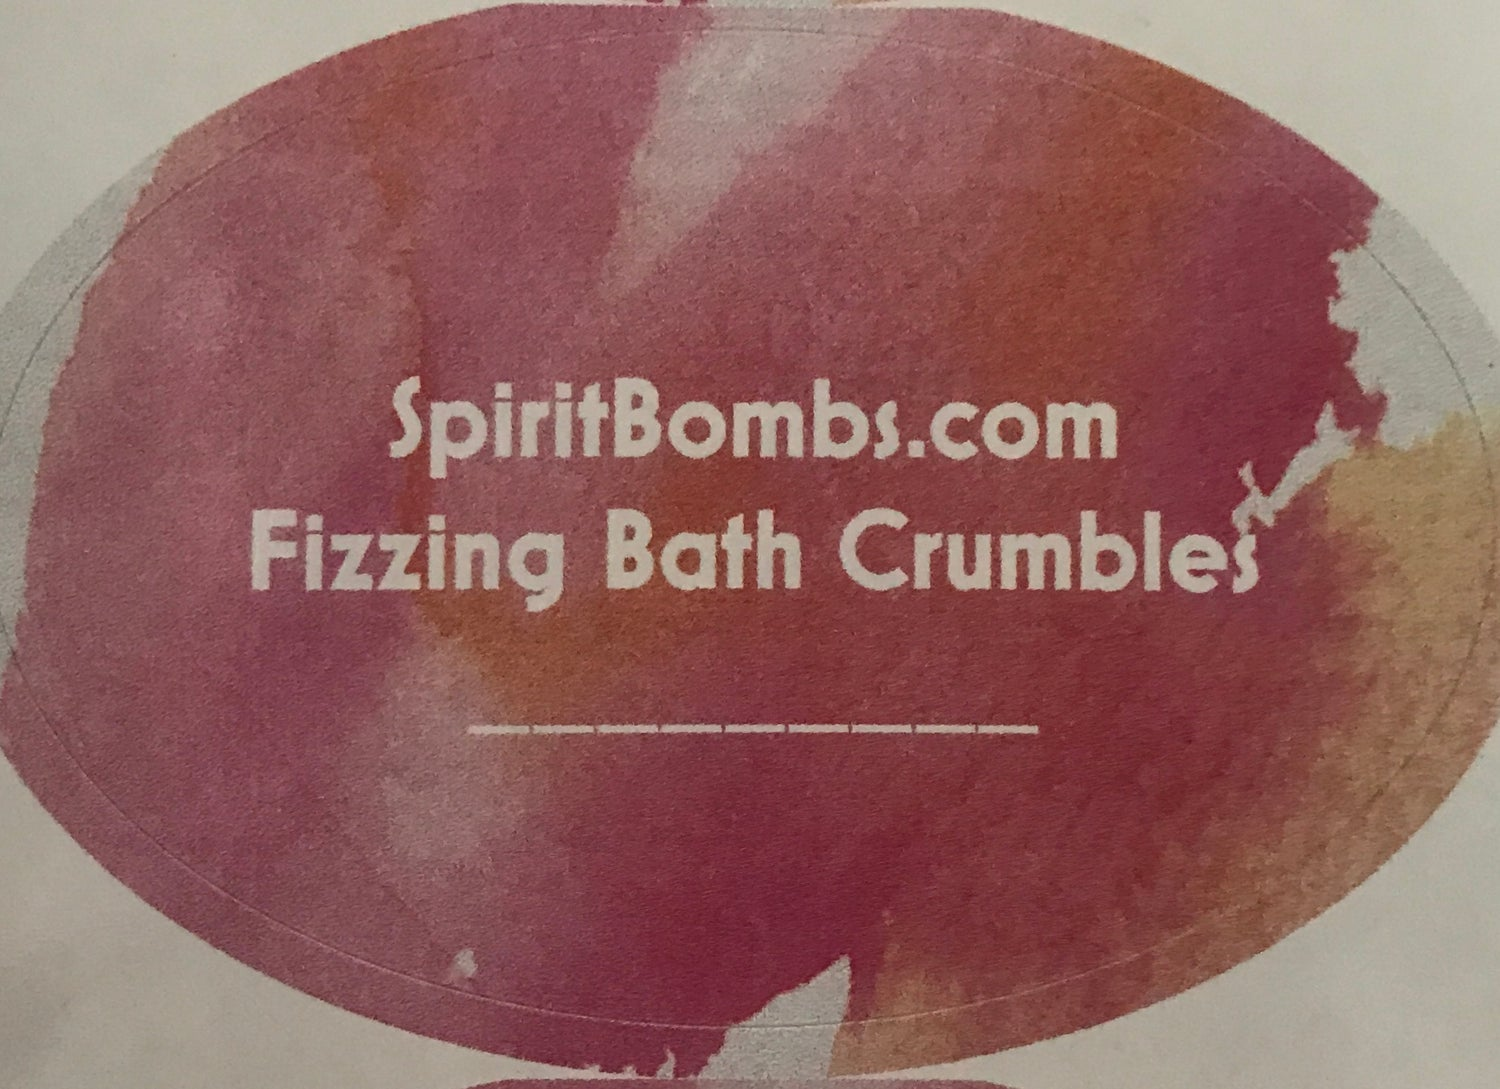 Image of Fizzing Bath Crumbles